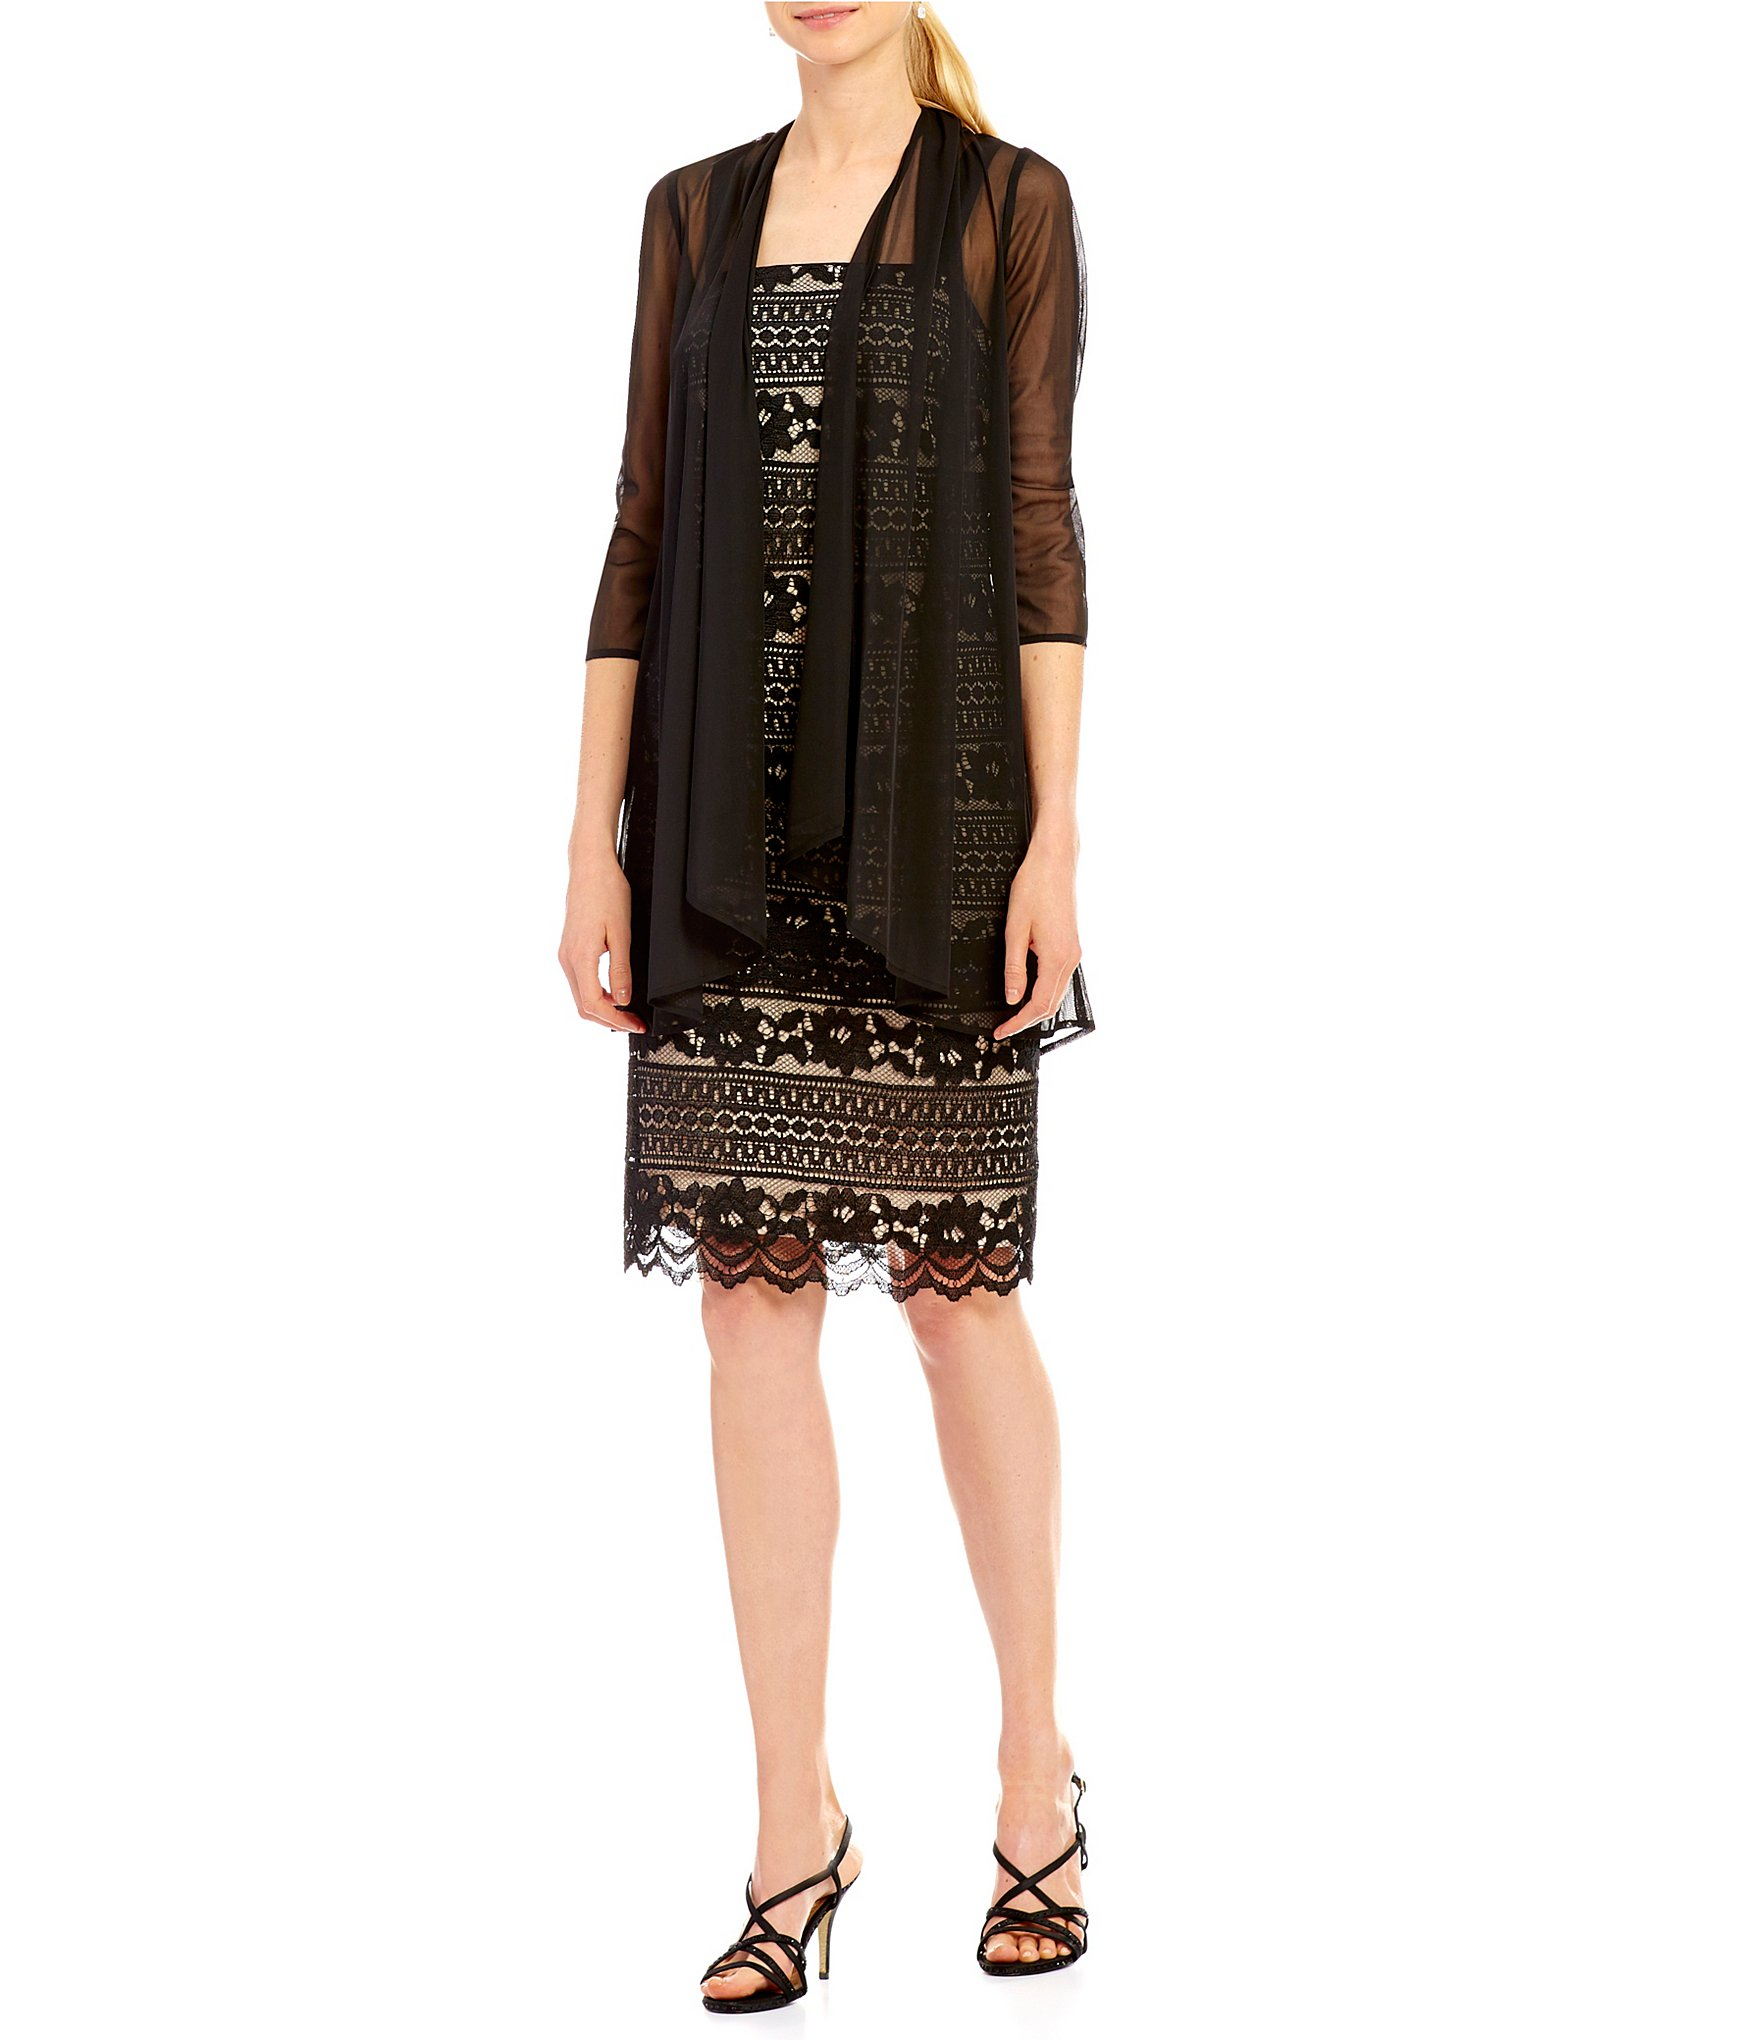 Km collections lace jacket dress sapphire